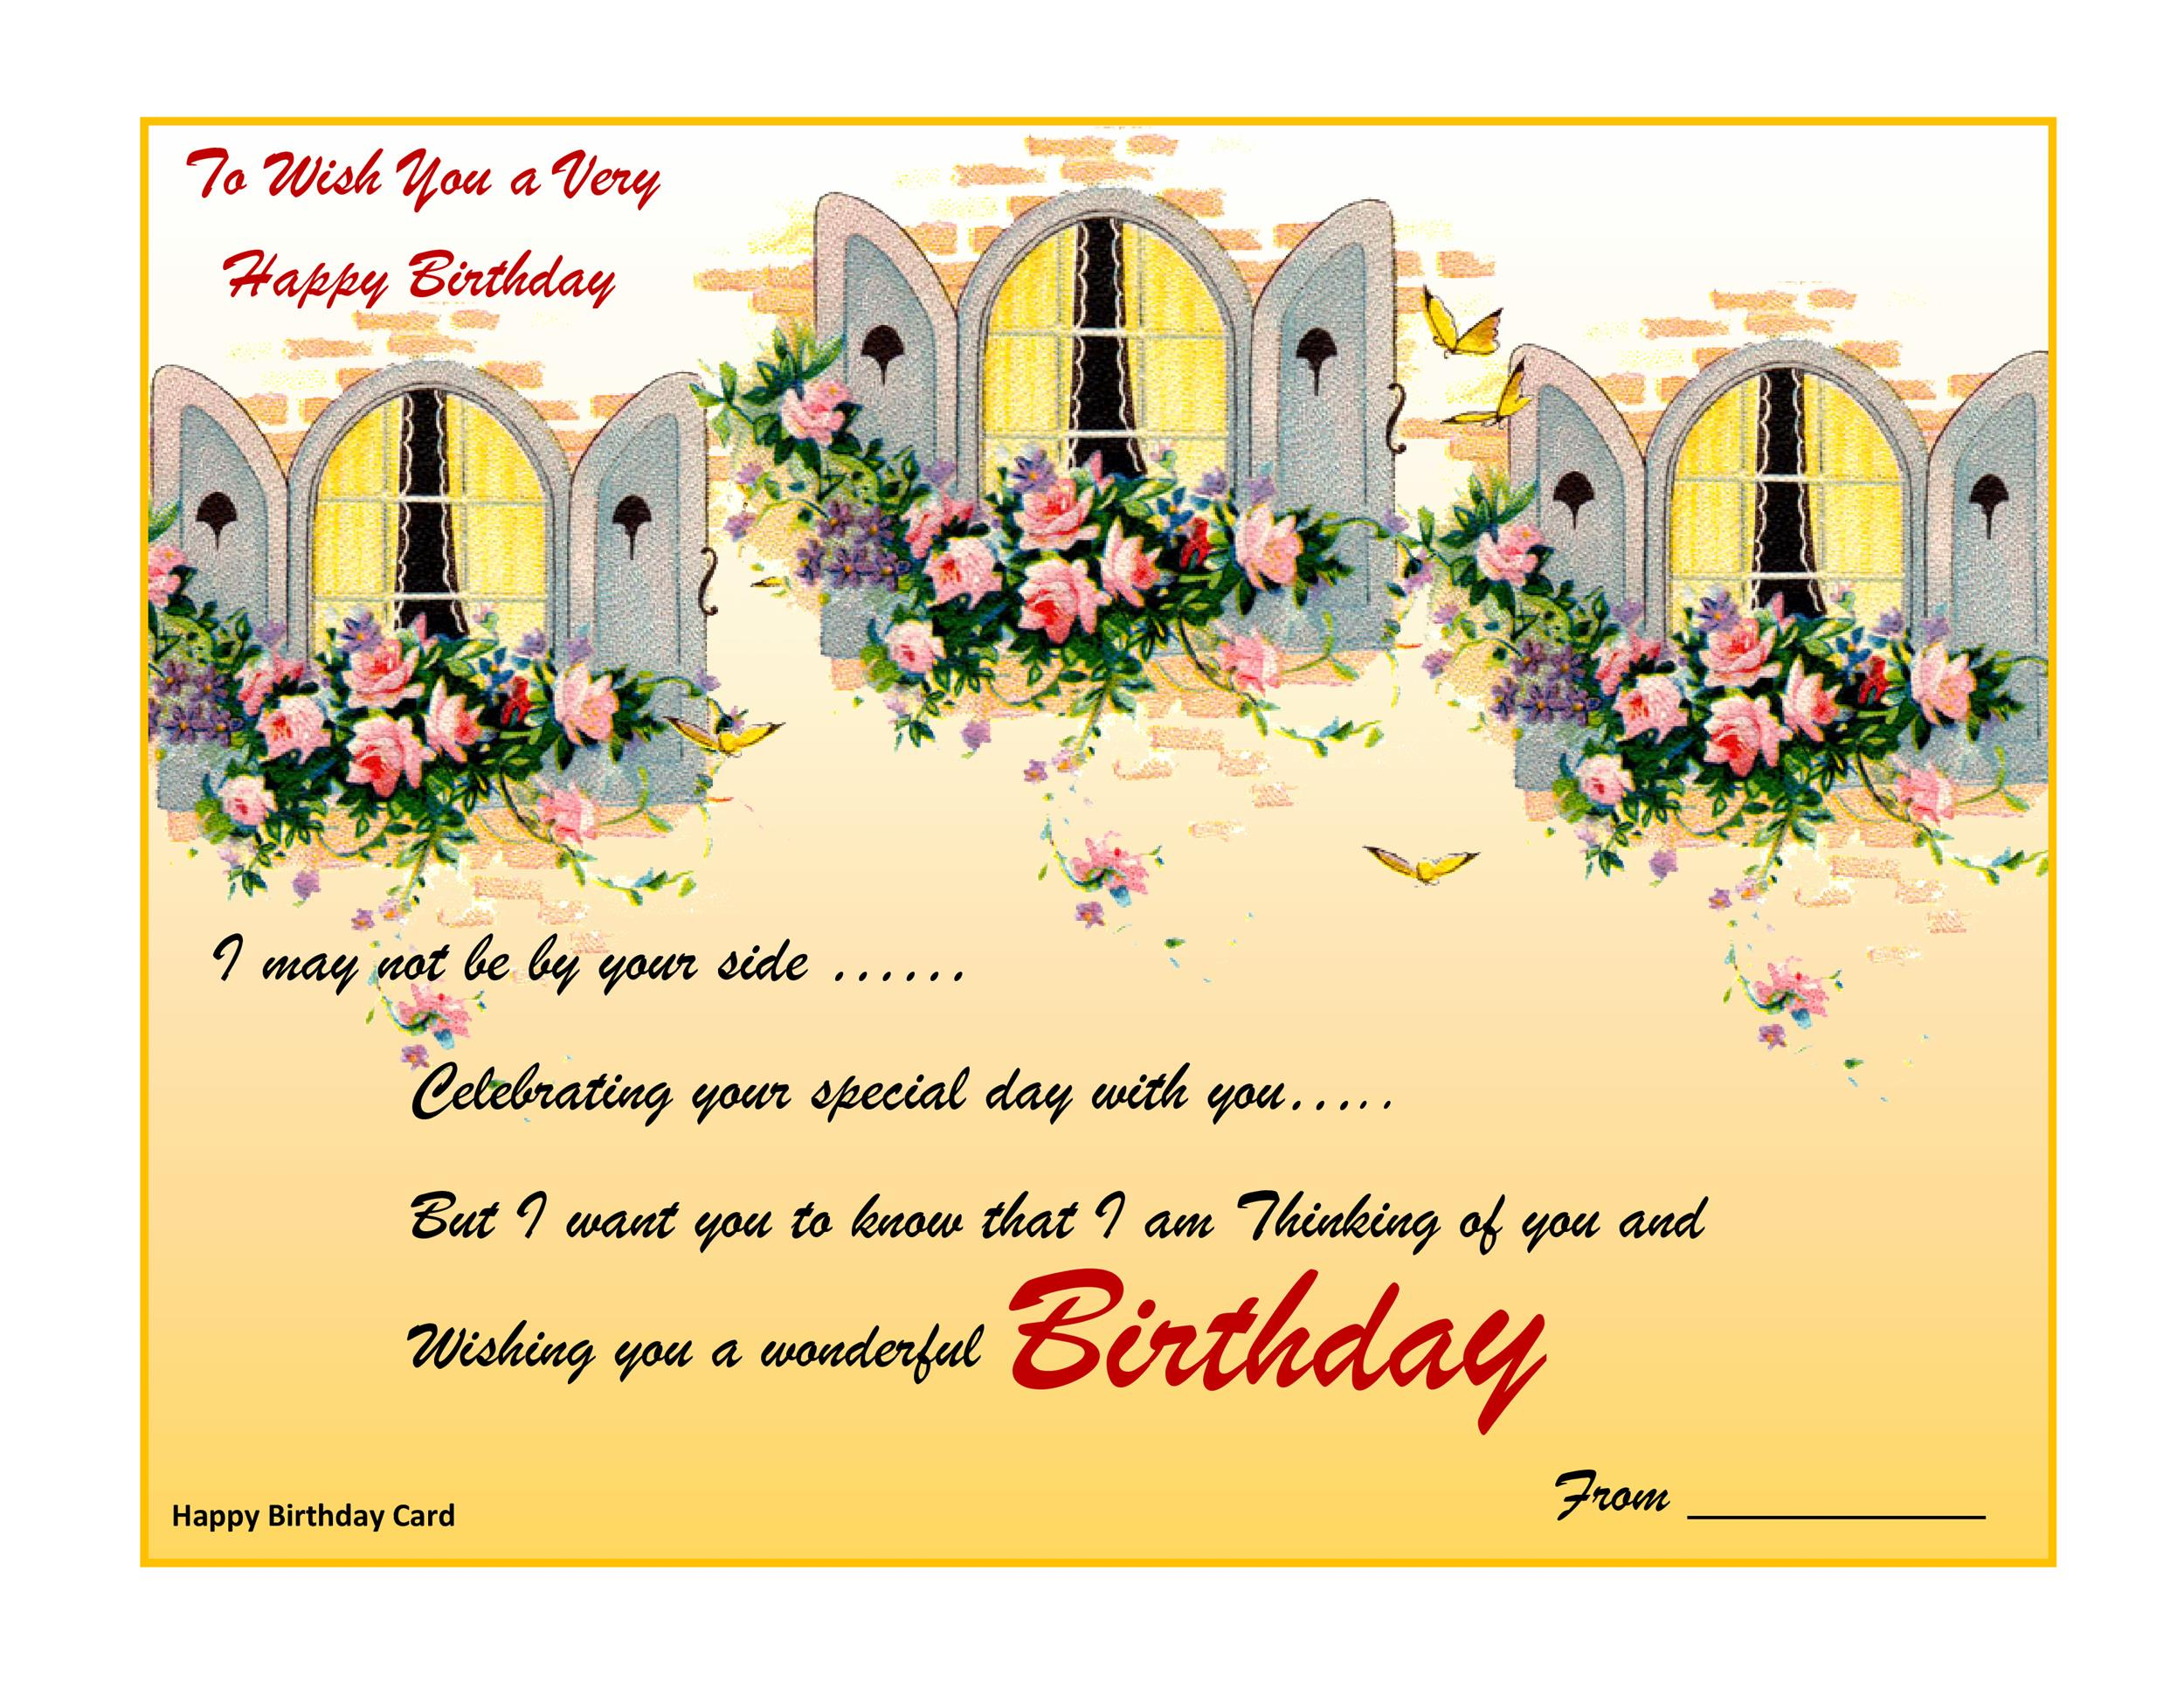 40+ FREE Birthday Card Templates - Template Lab - printable birthday card template